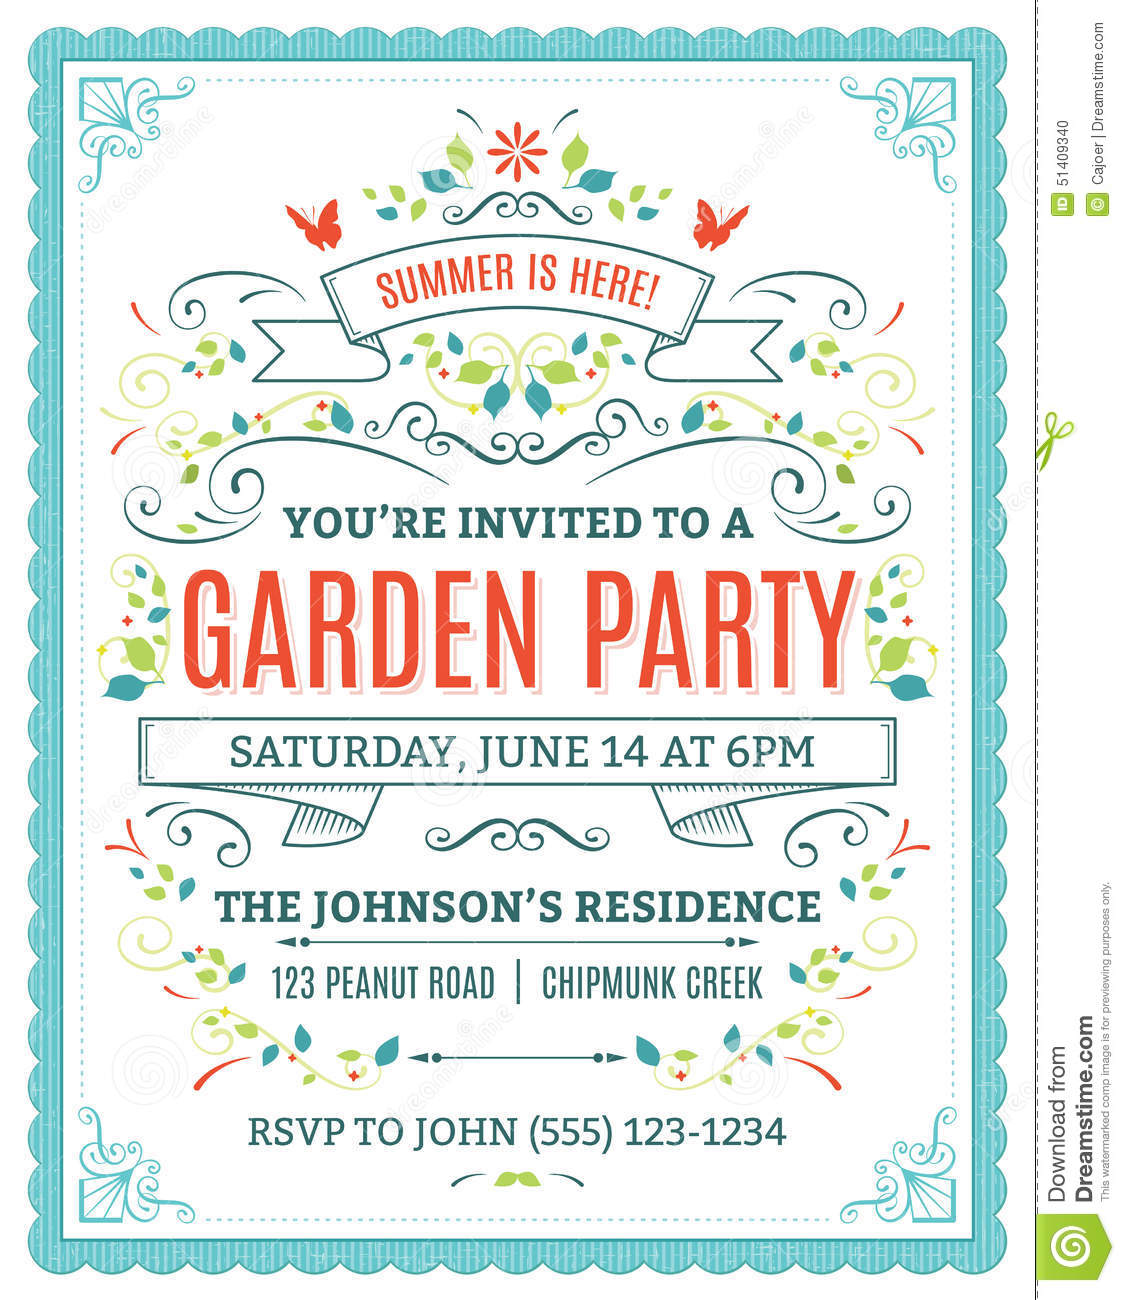 Party Invitations Message was beautiful invitations example